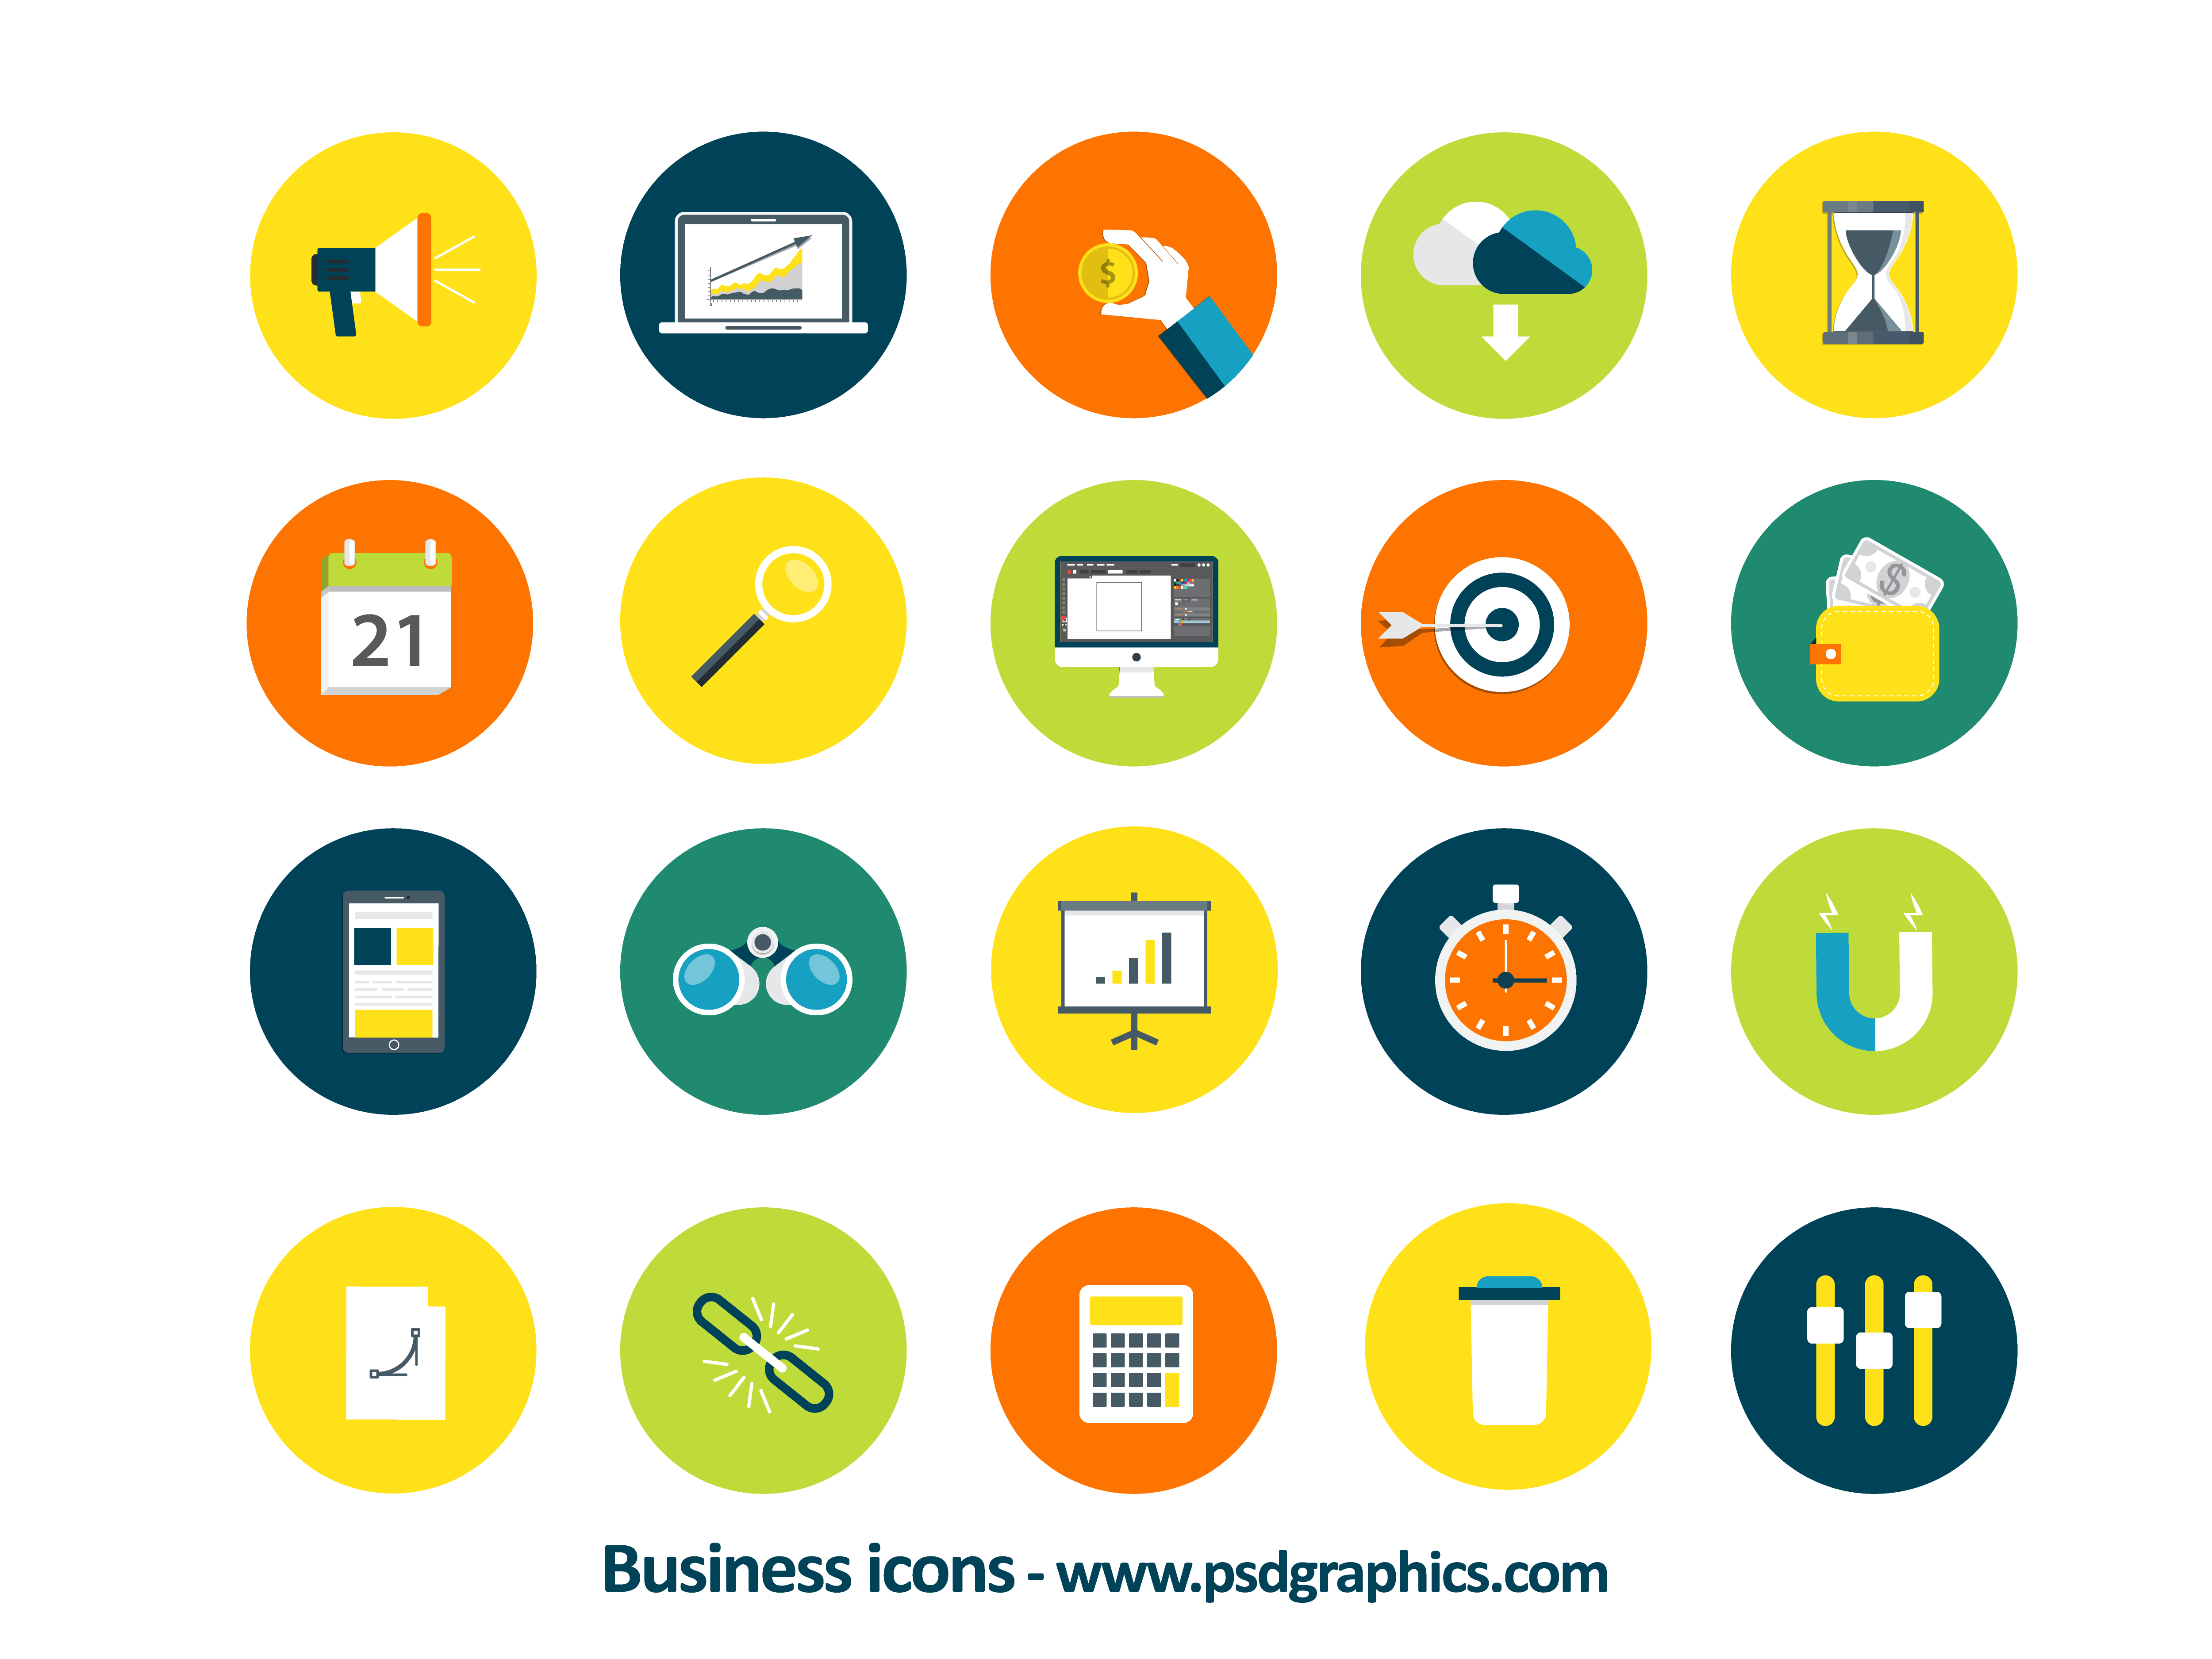 for free download. Business icon png